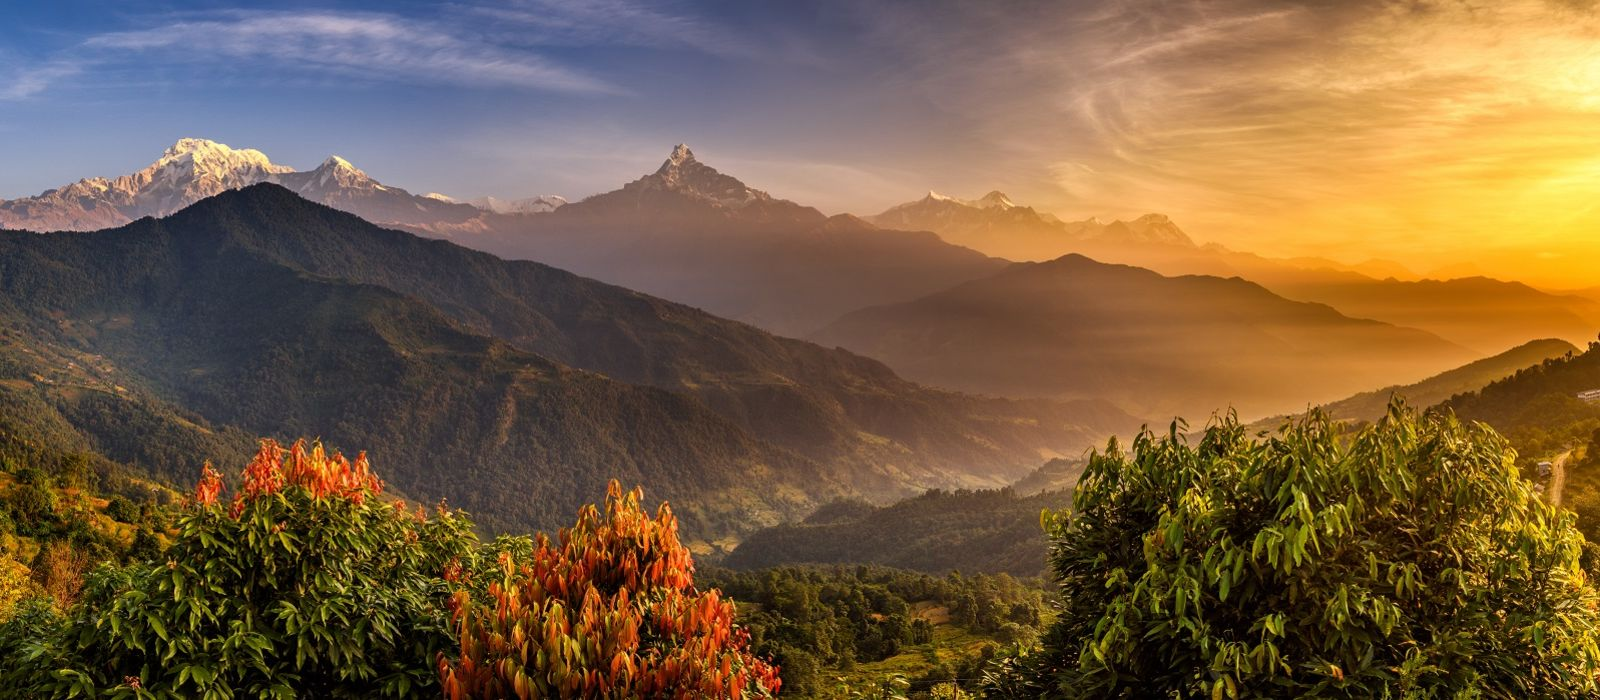 Annapurna Himalayas near Pokhara in Nepal Holiday